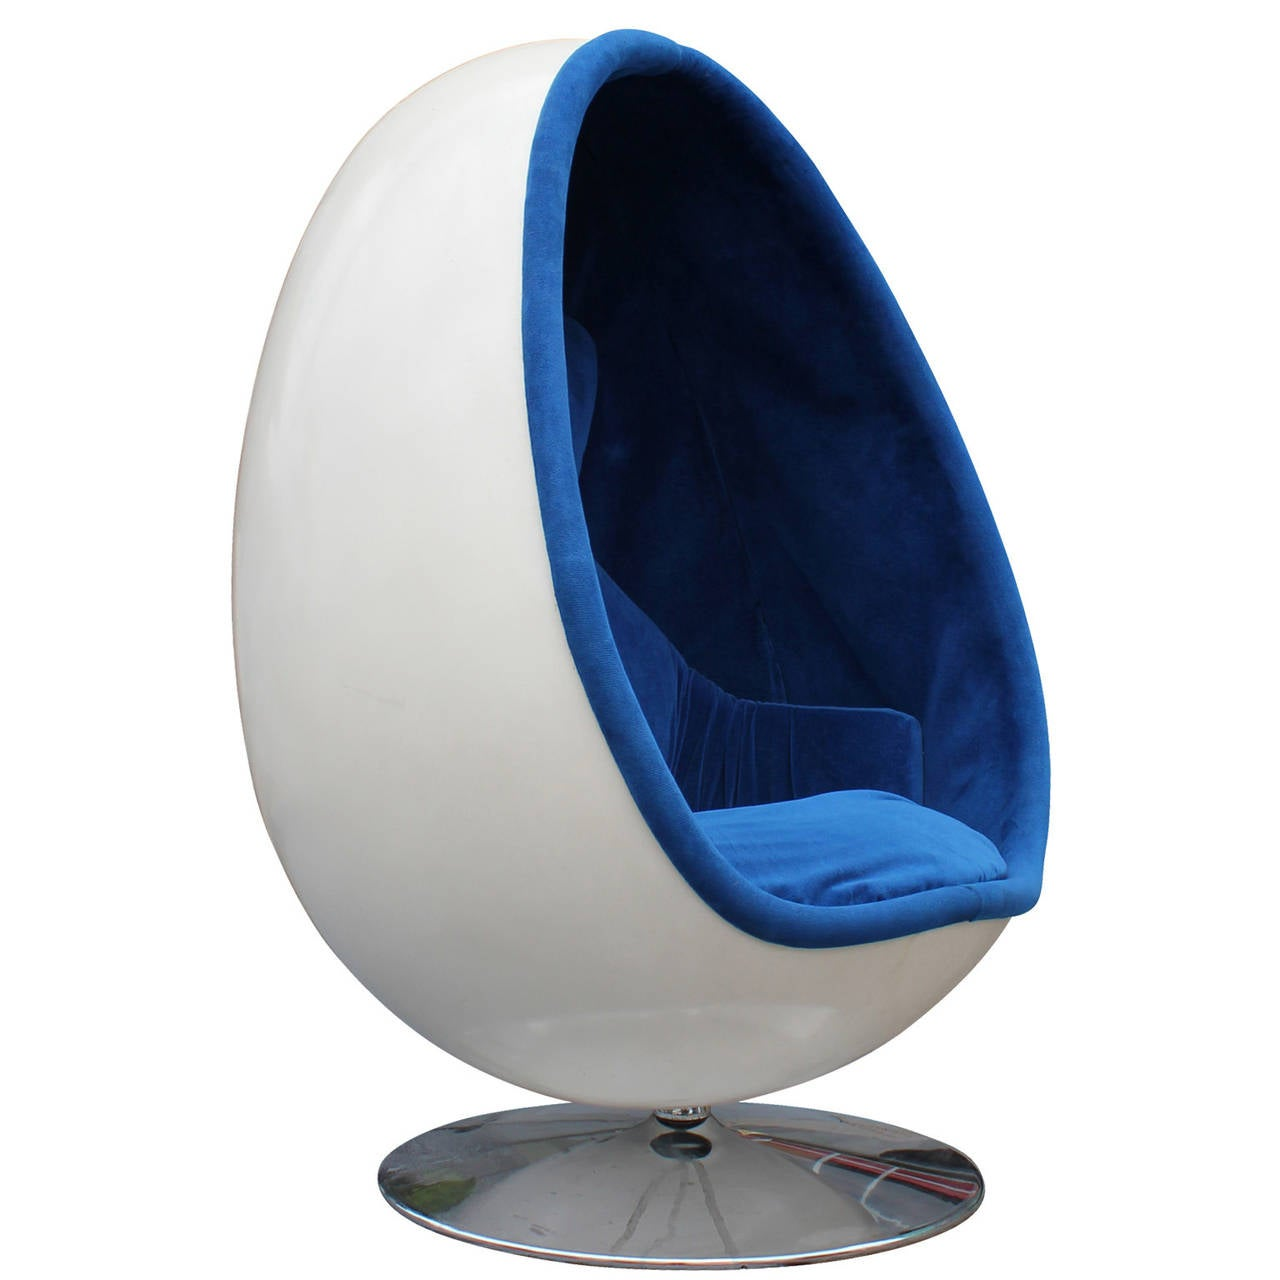 blue egg chair bernhardt leather ovalia by thor larsen at 1stdibs